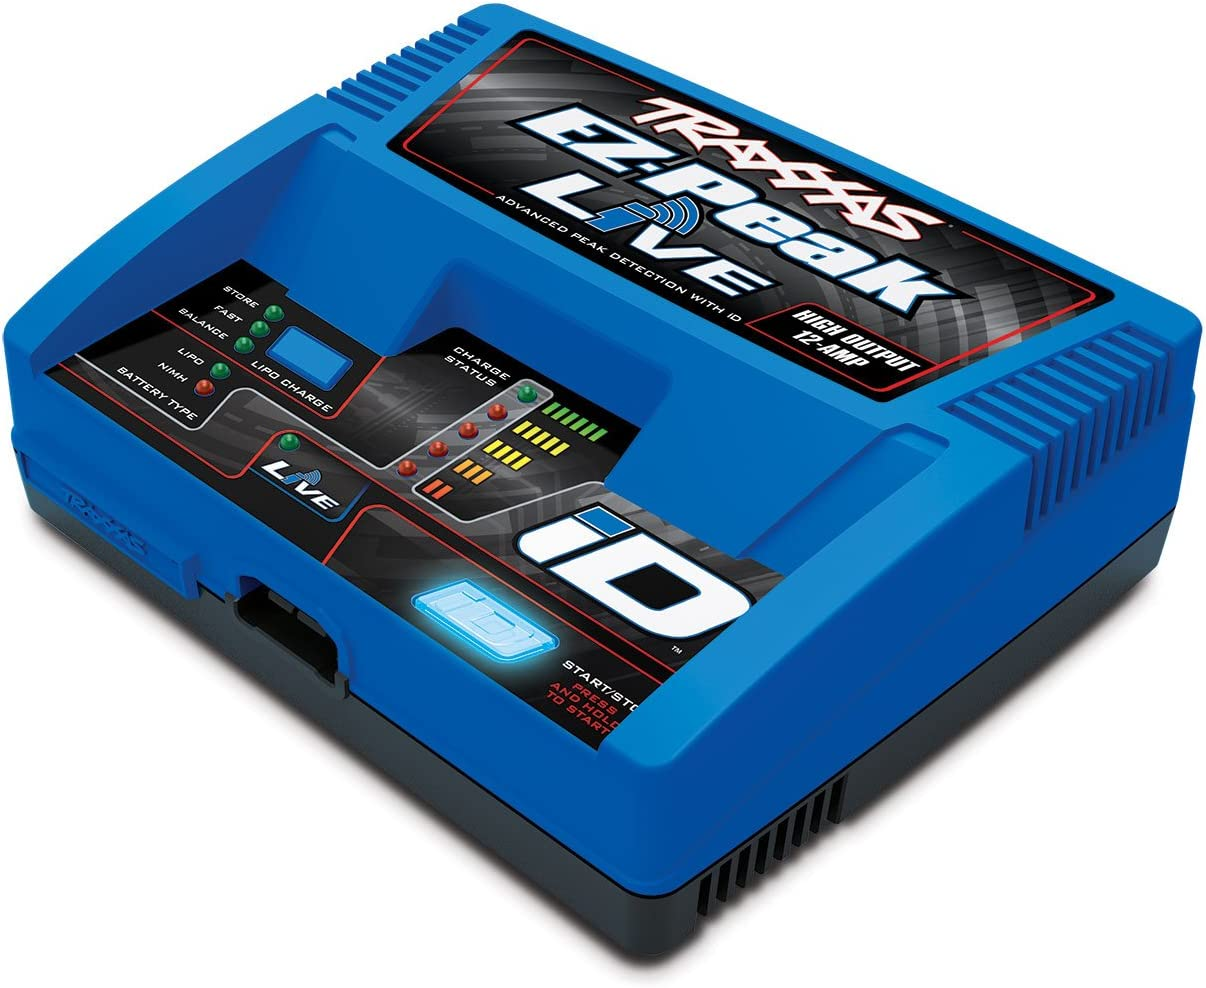 Traxxas 2971 EZ-Peak Live 12-Amp NiMH/LiPo Fast Charger with ID Technology Vehicle